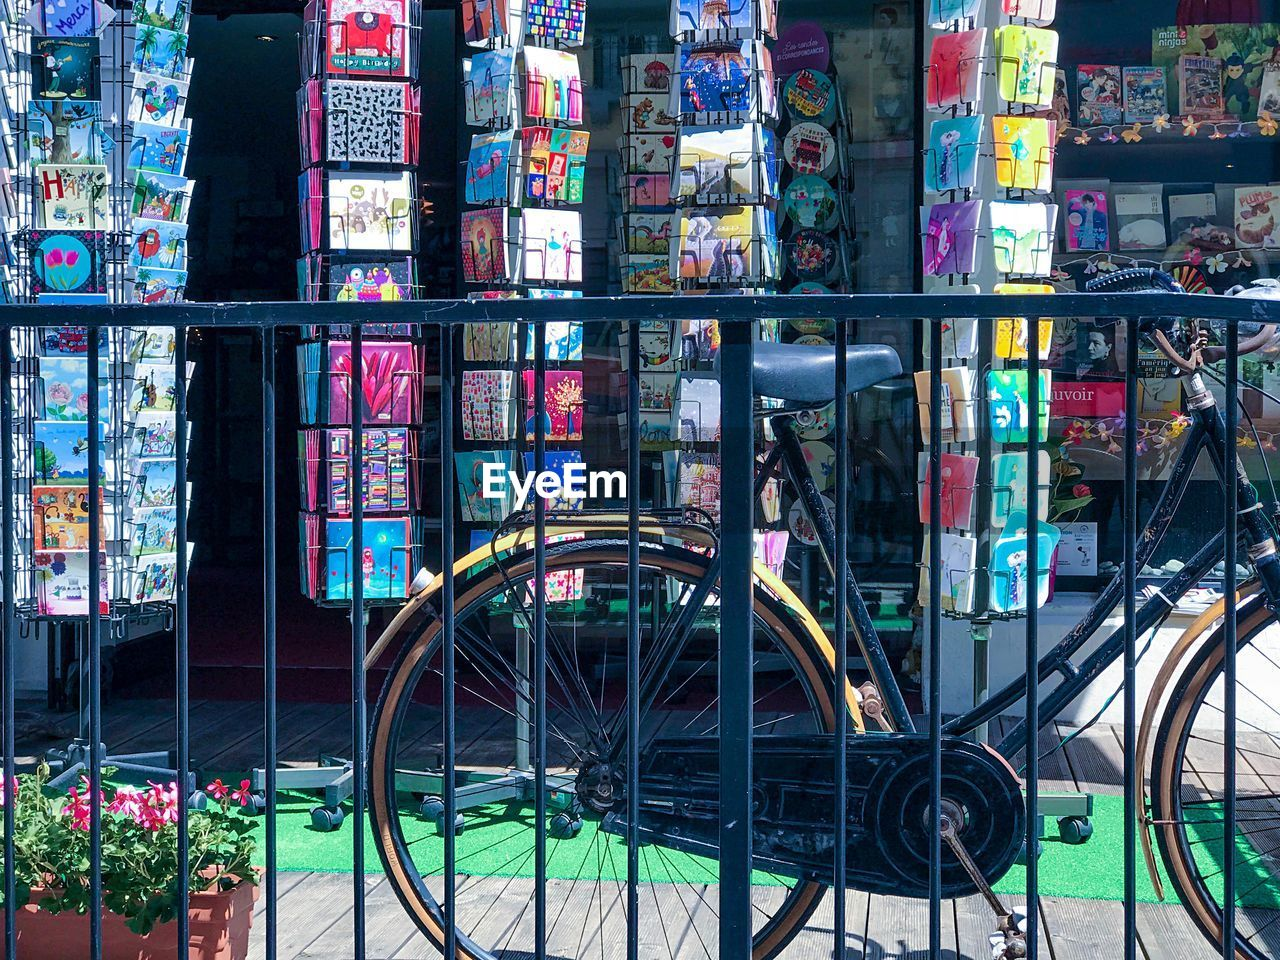 VIEW OF MULTI COLORED BICYCLES